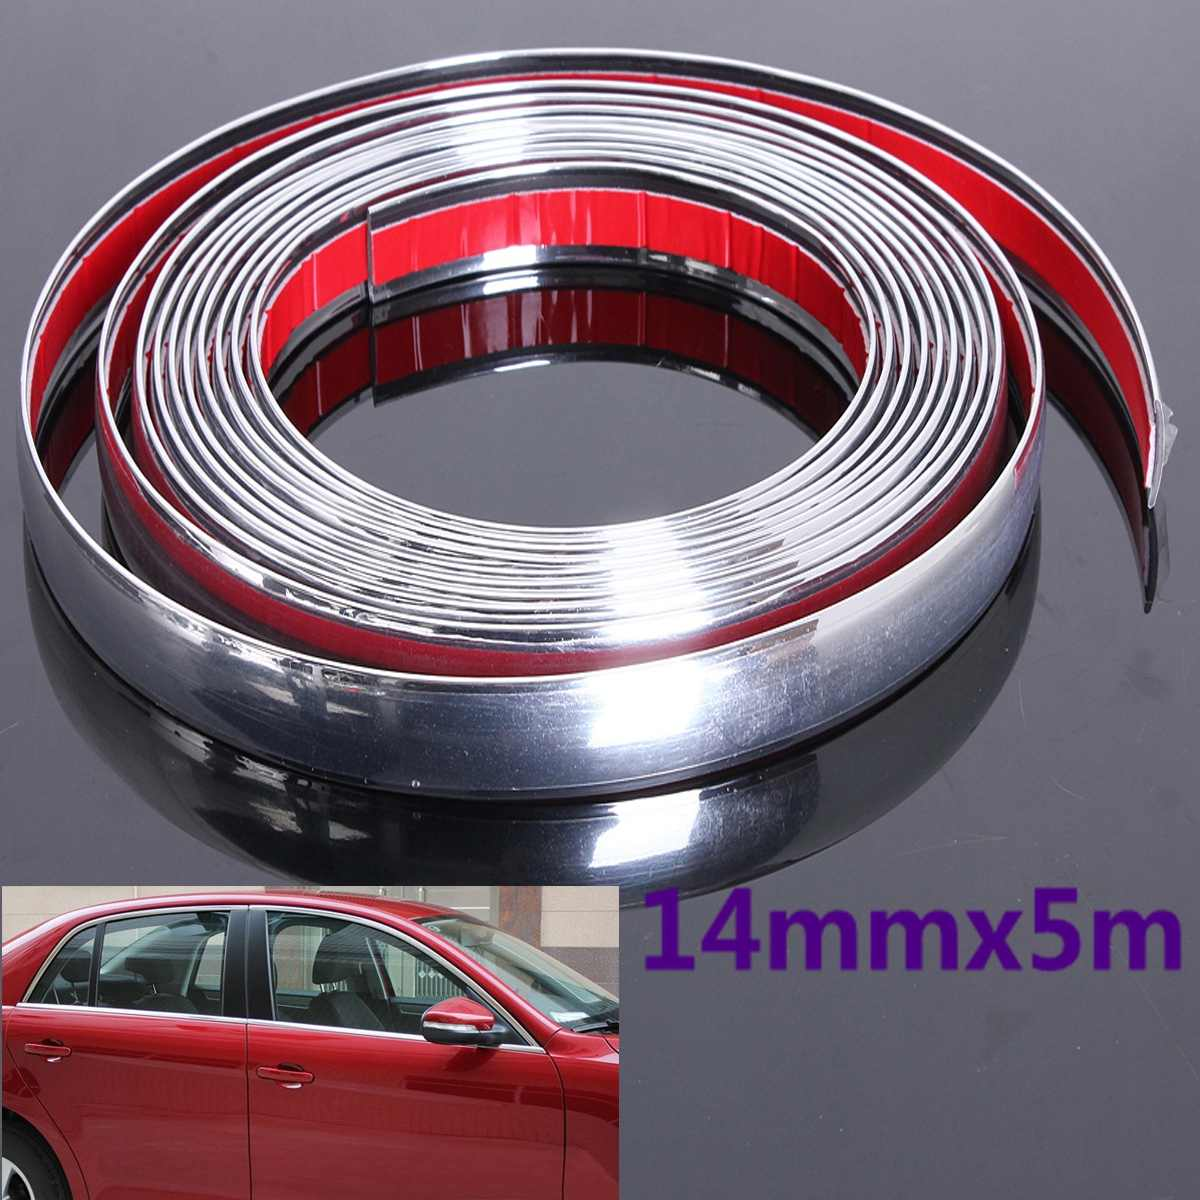 14mm 5M Auto Car Styling Decorative Moulding Strip Trim Self Adhesive Protecter Decal Chrome Styling Van